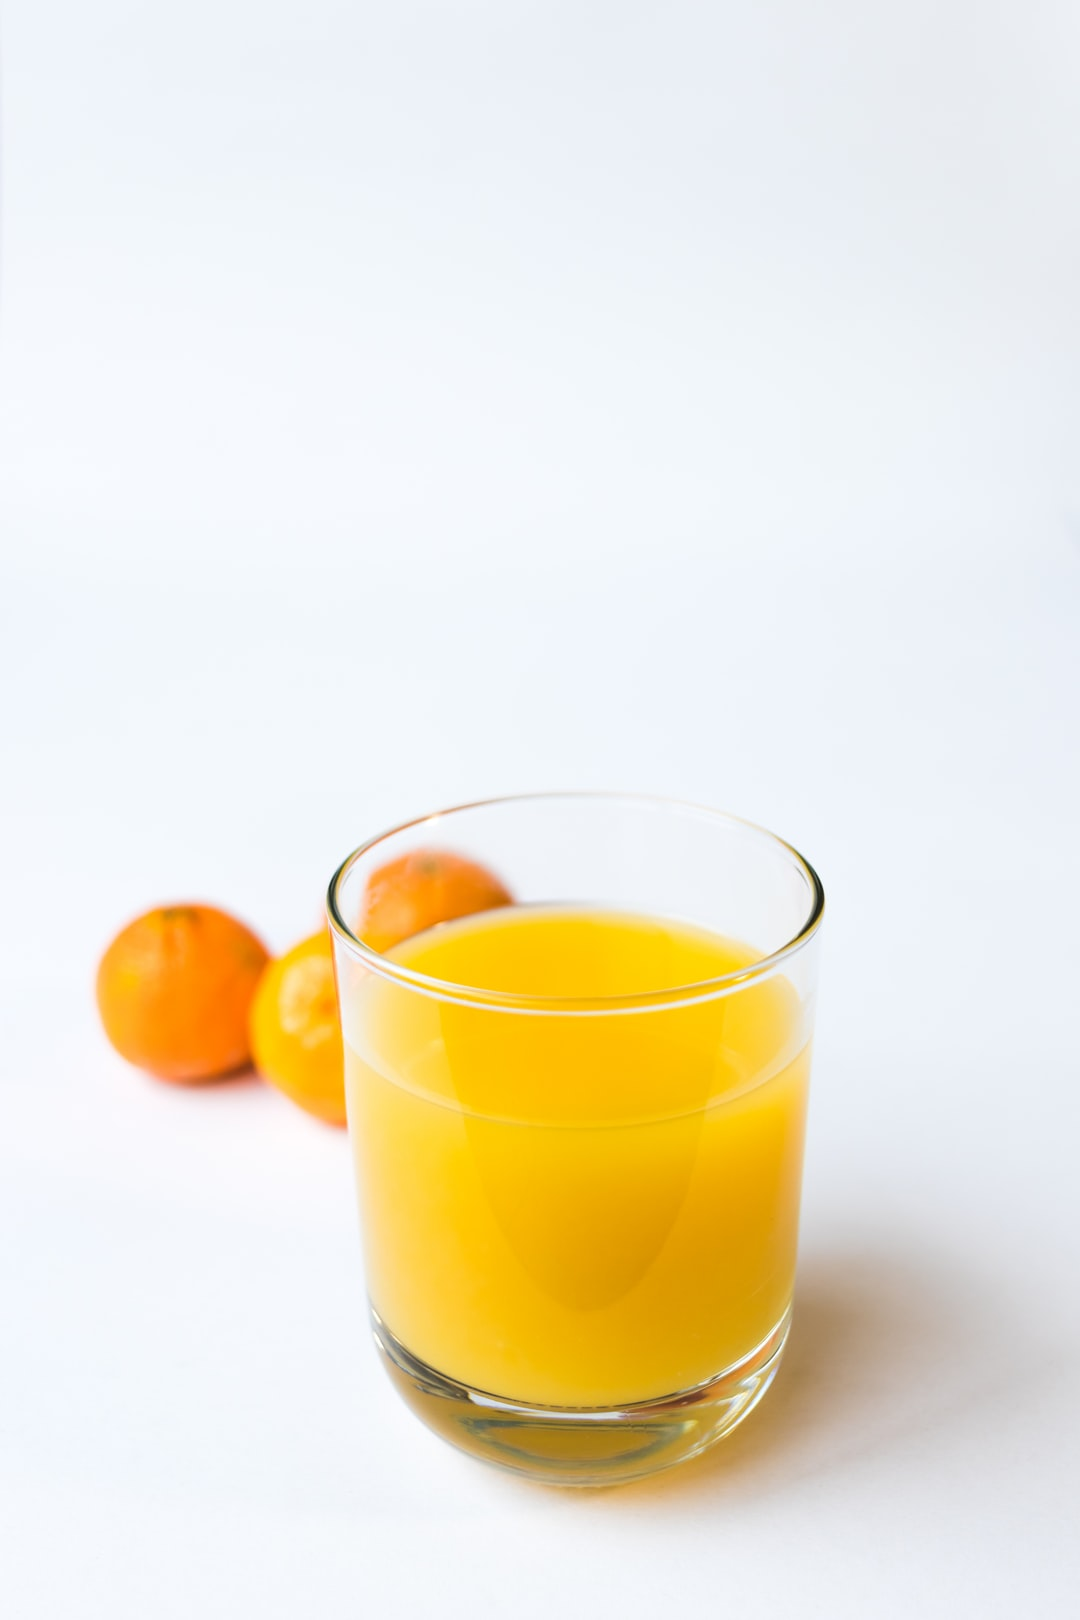 Who doesn't love a sweet glass of OJ? Didn't think so.